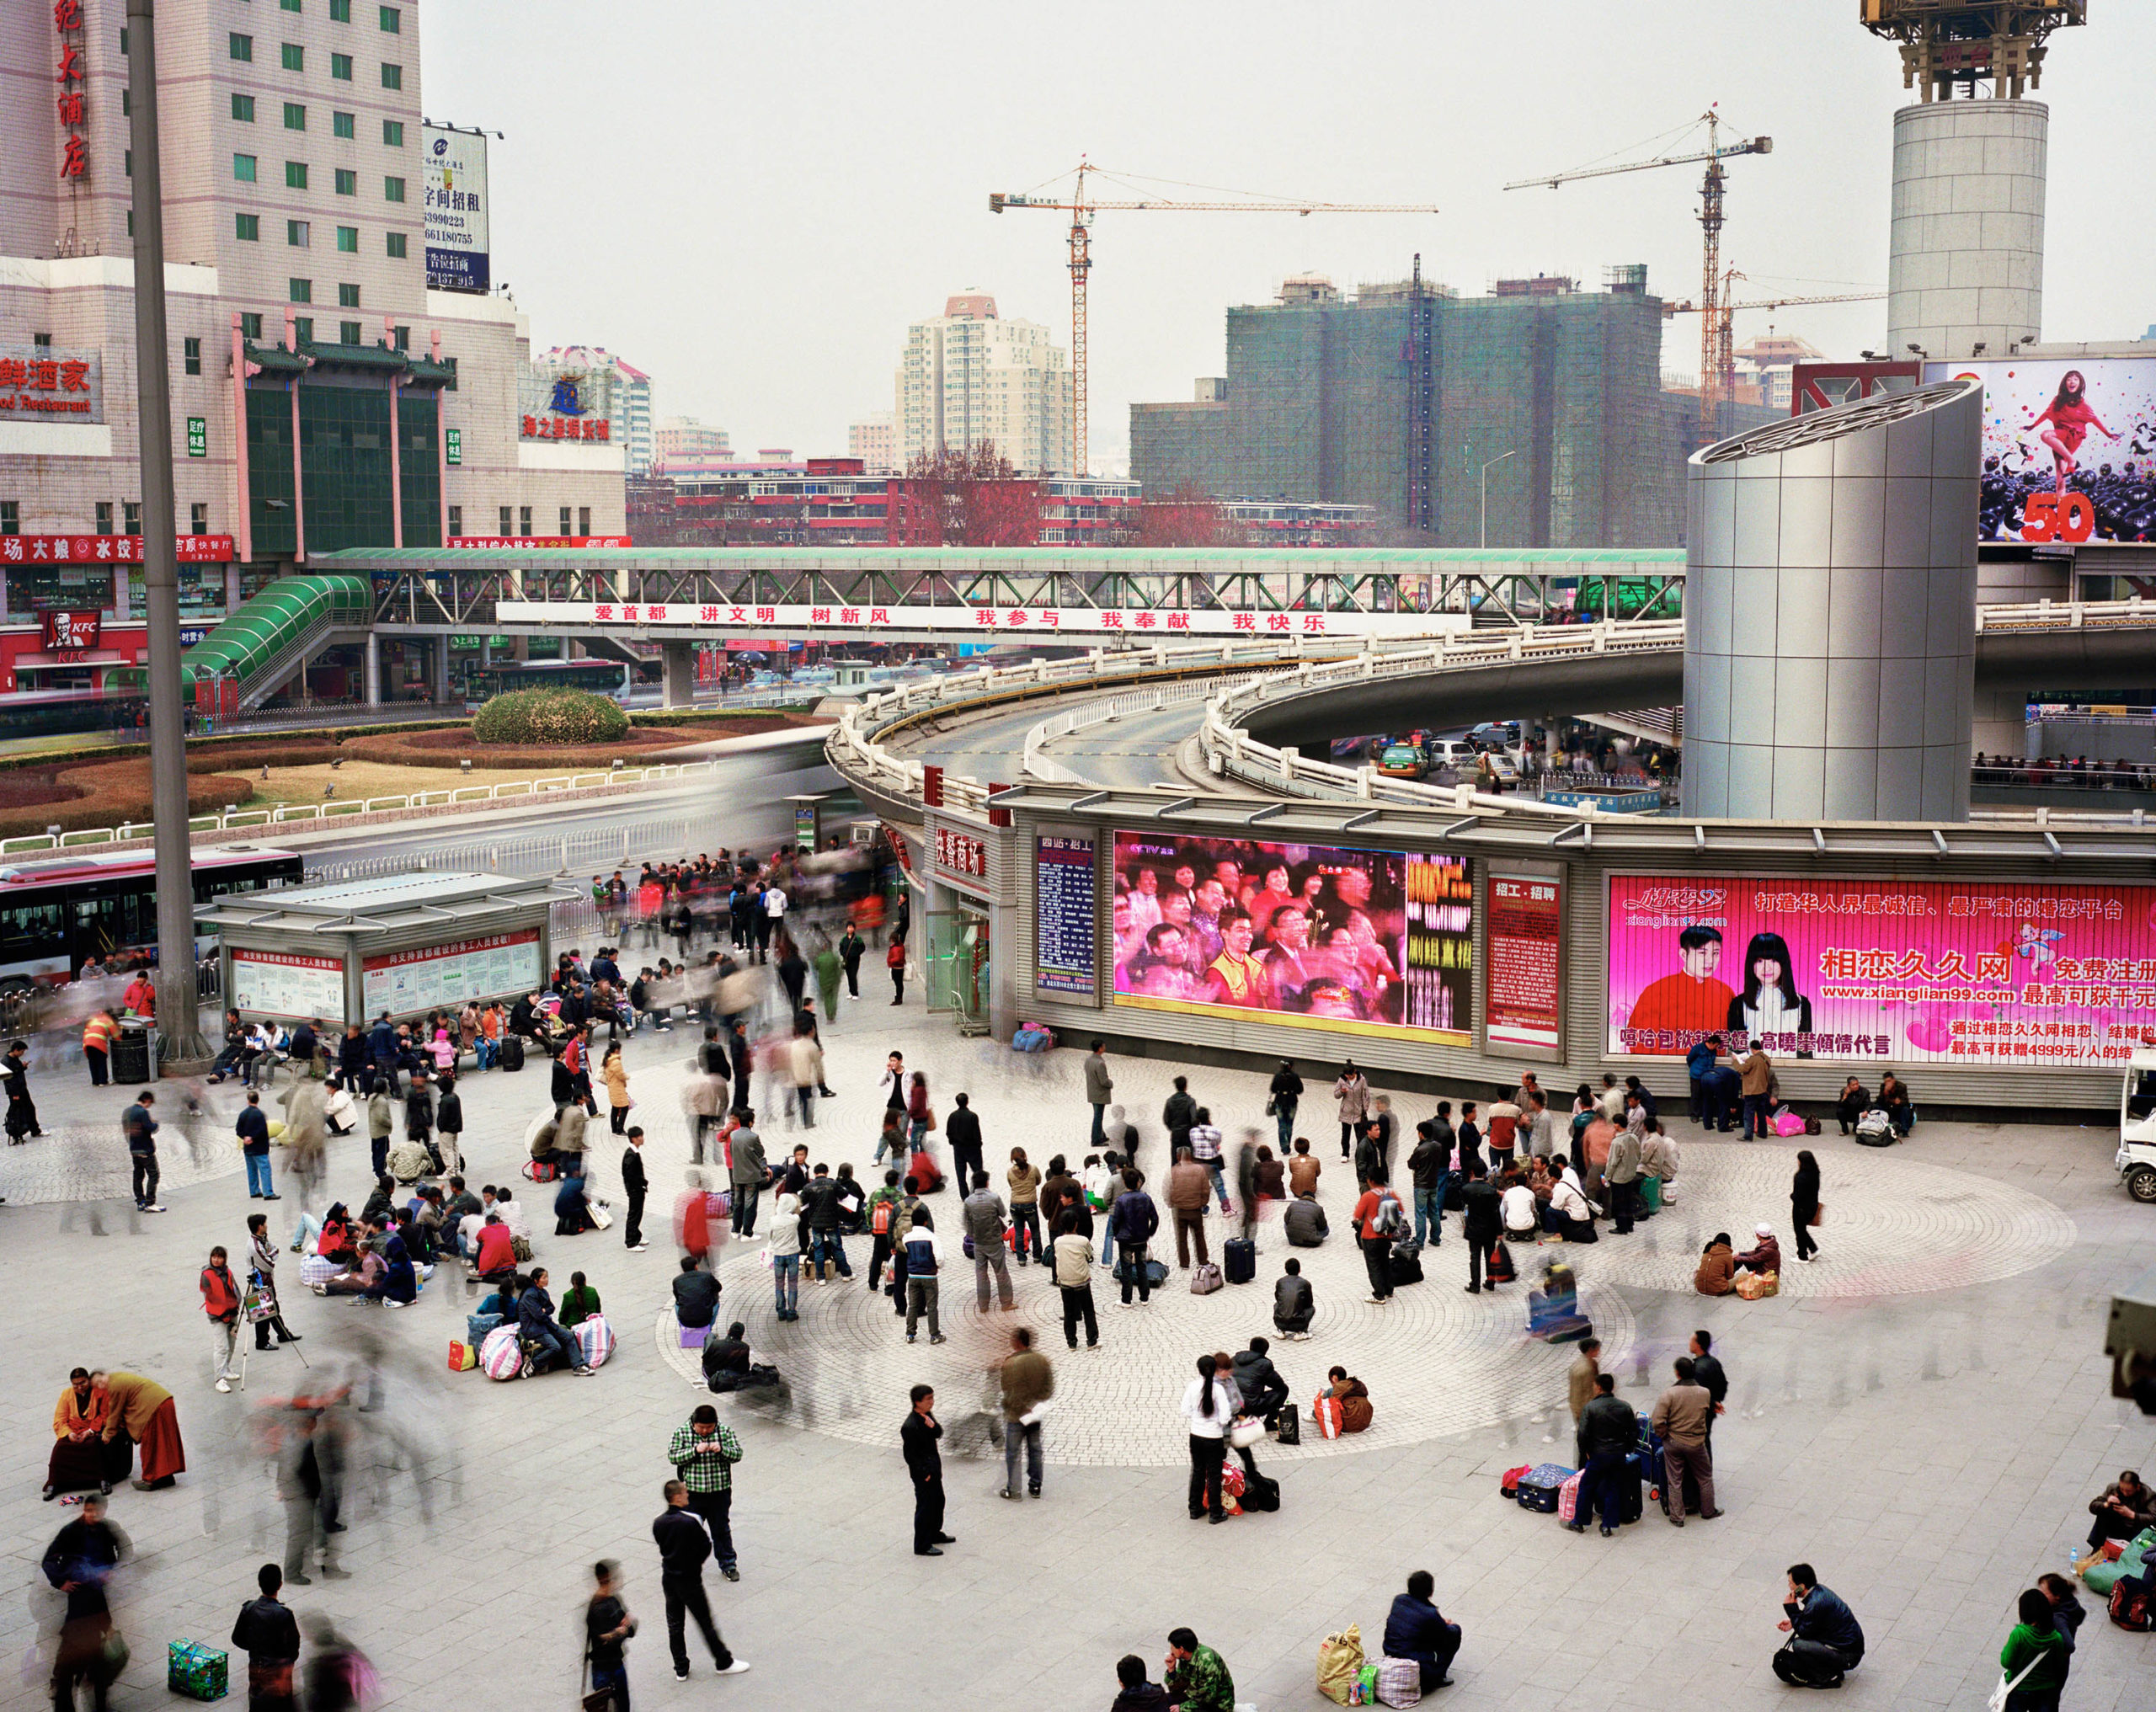 North Square of Beijing West Railway Station, Fengtai District, Beijing